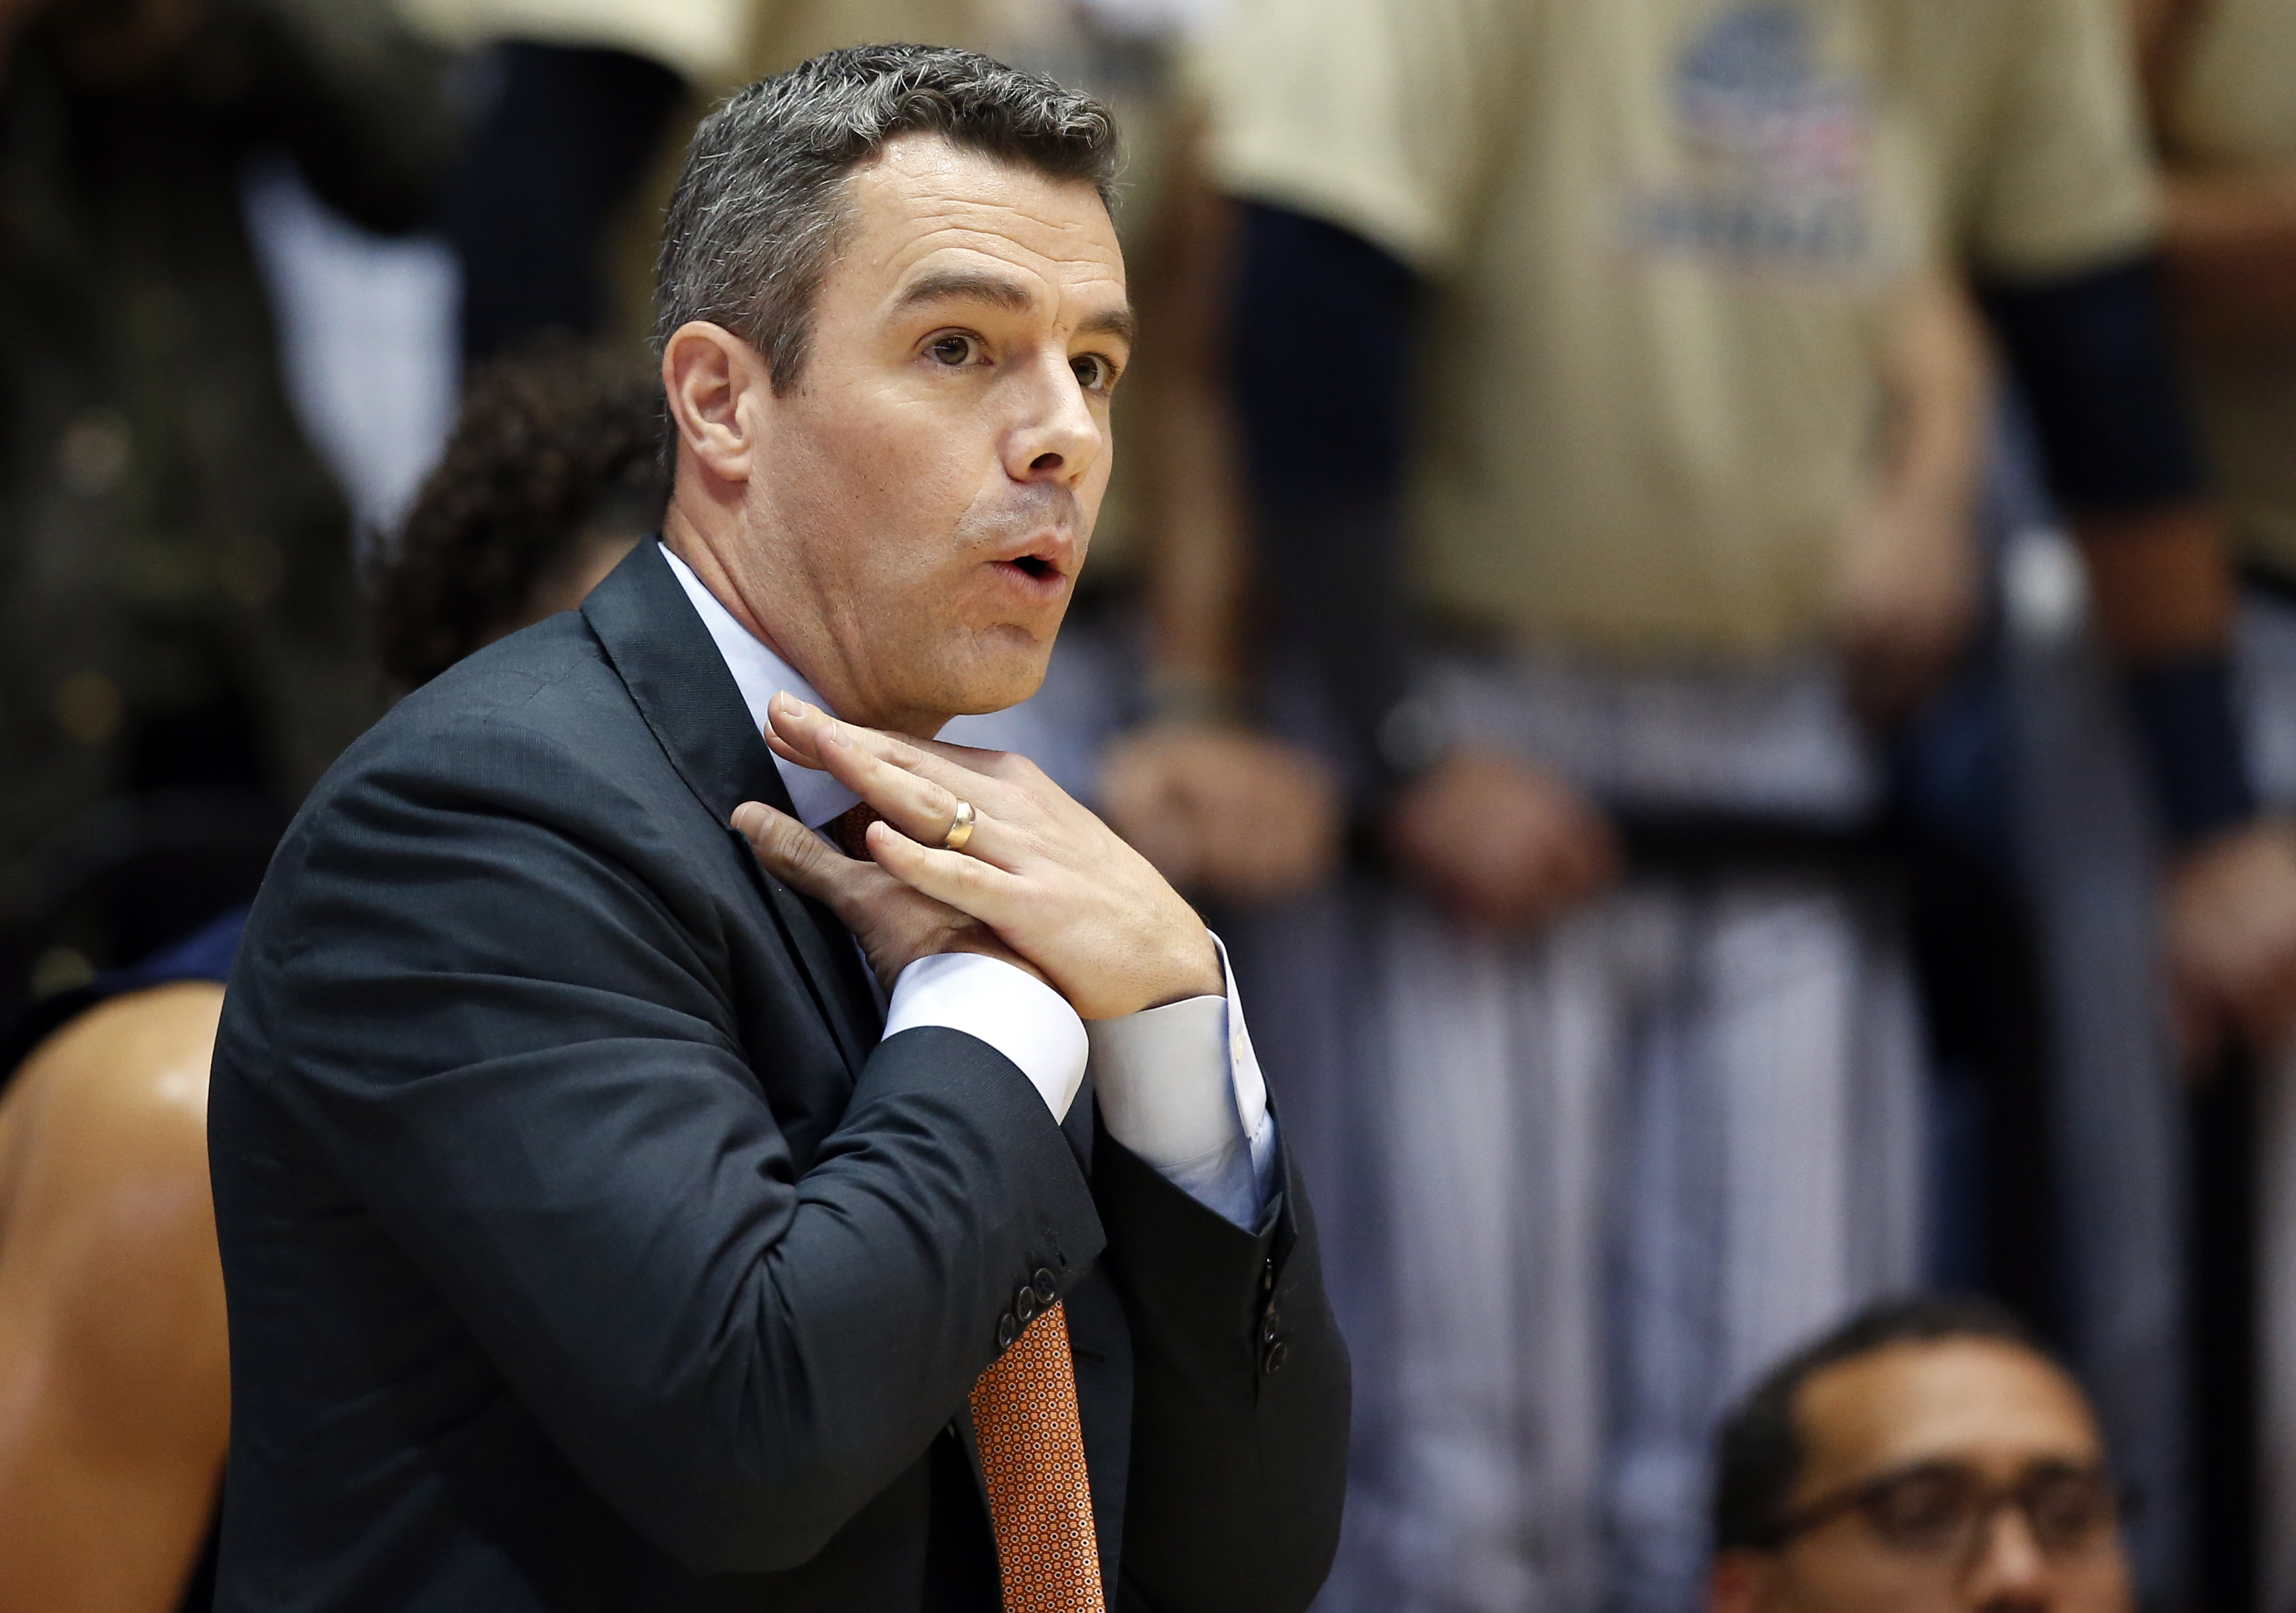 Virginia head coach Tony Bennett reacts during the first half of an NCAA college basketball game against George Washington, Monday, Nov. 16, 2015, in Washington. George Washington won 73-68. (AP Photo/Alex Brandon)